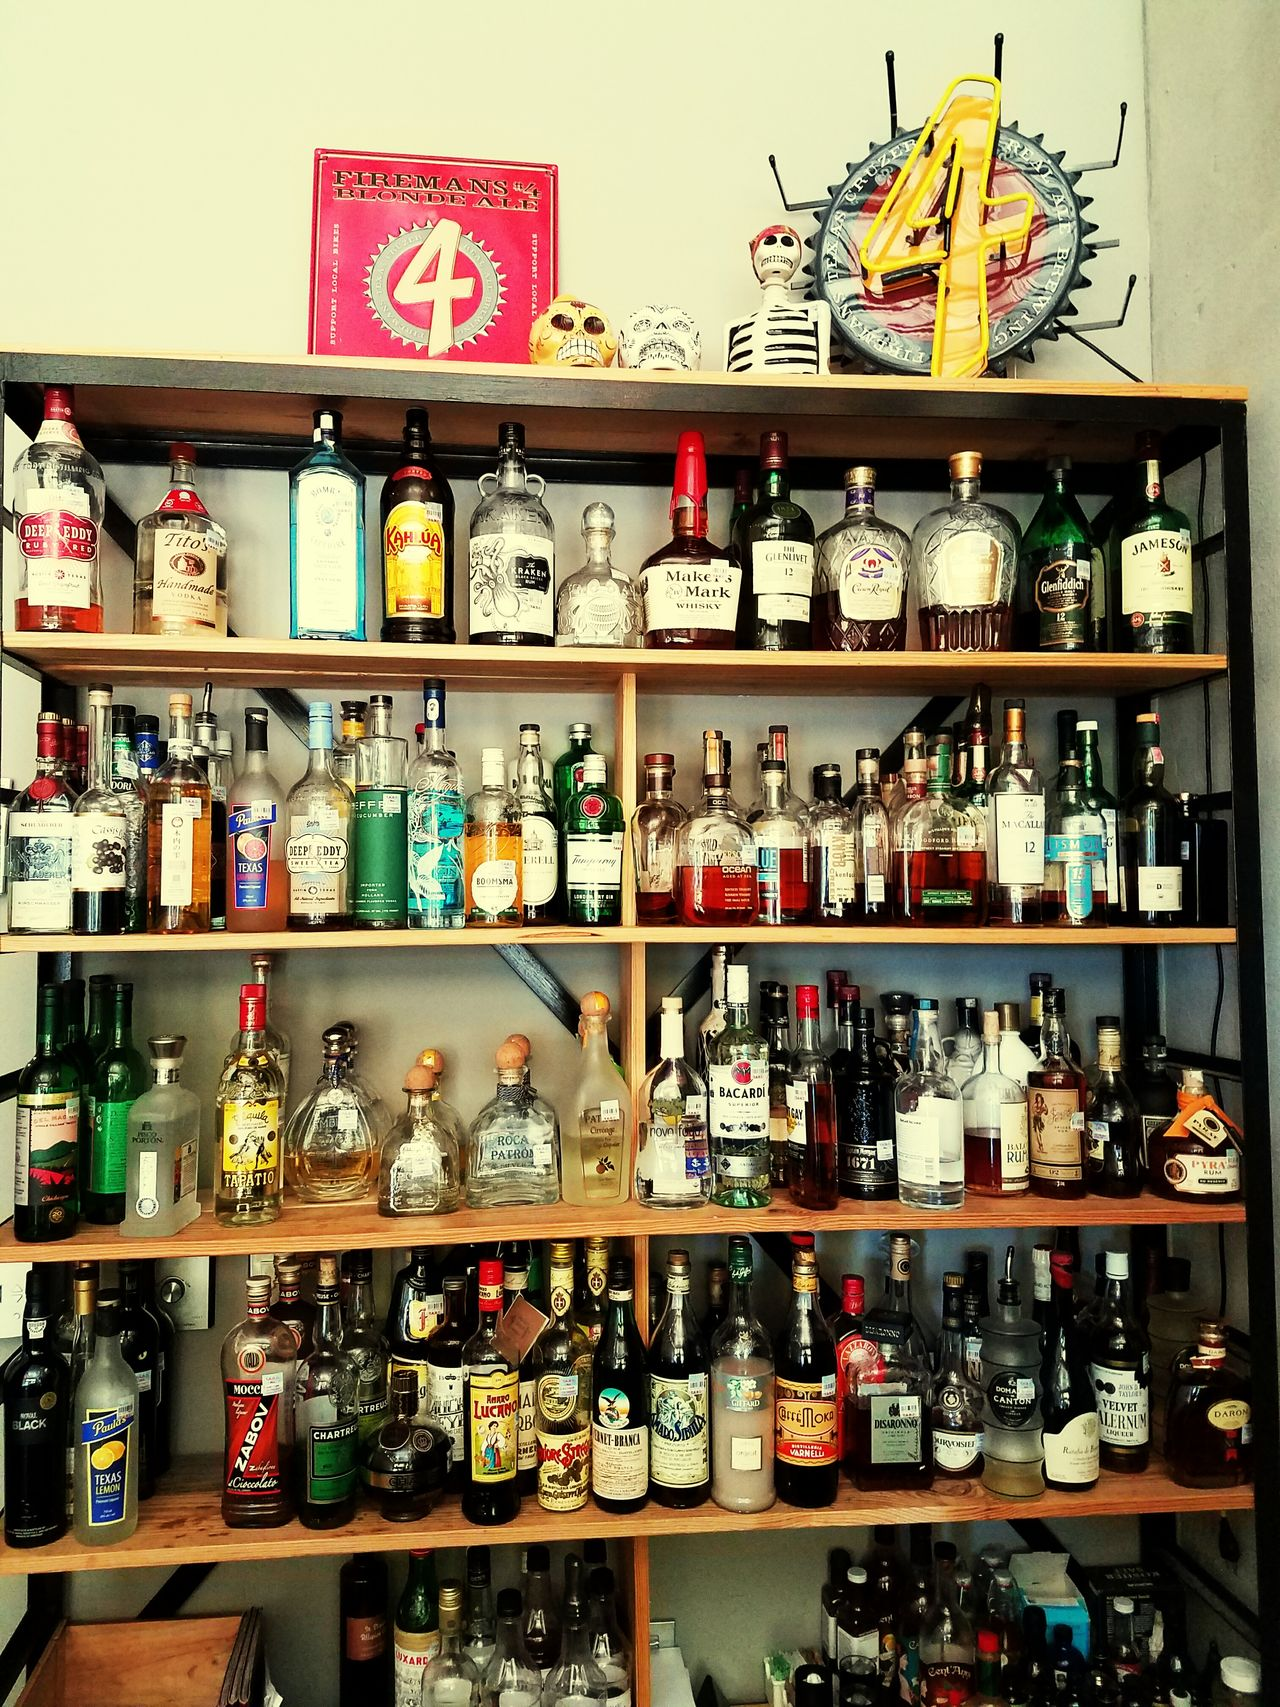 Workplace Barroom Holeinthewall Texas Town Variation Choice Large Group Of Objects Shelf Abundance Communication Collection Sale Retail  Food And Drink Still Life For Sale